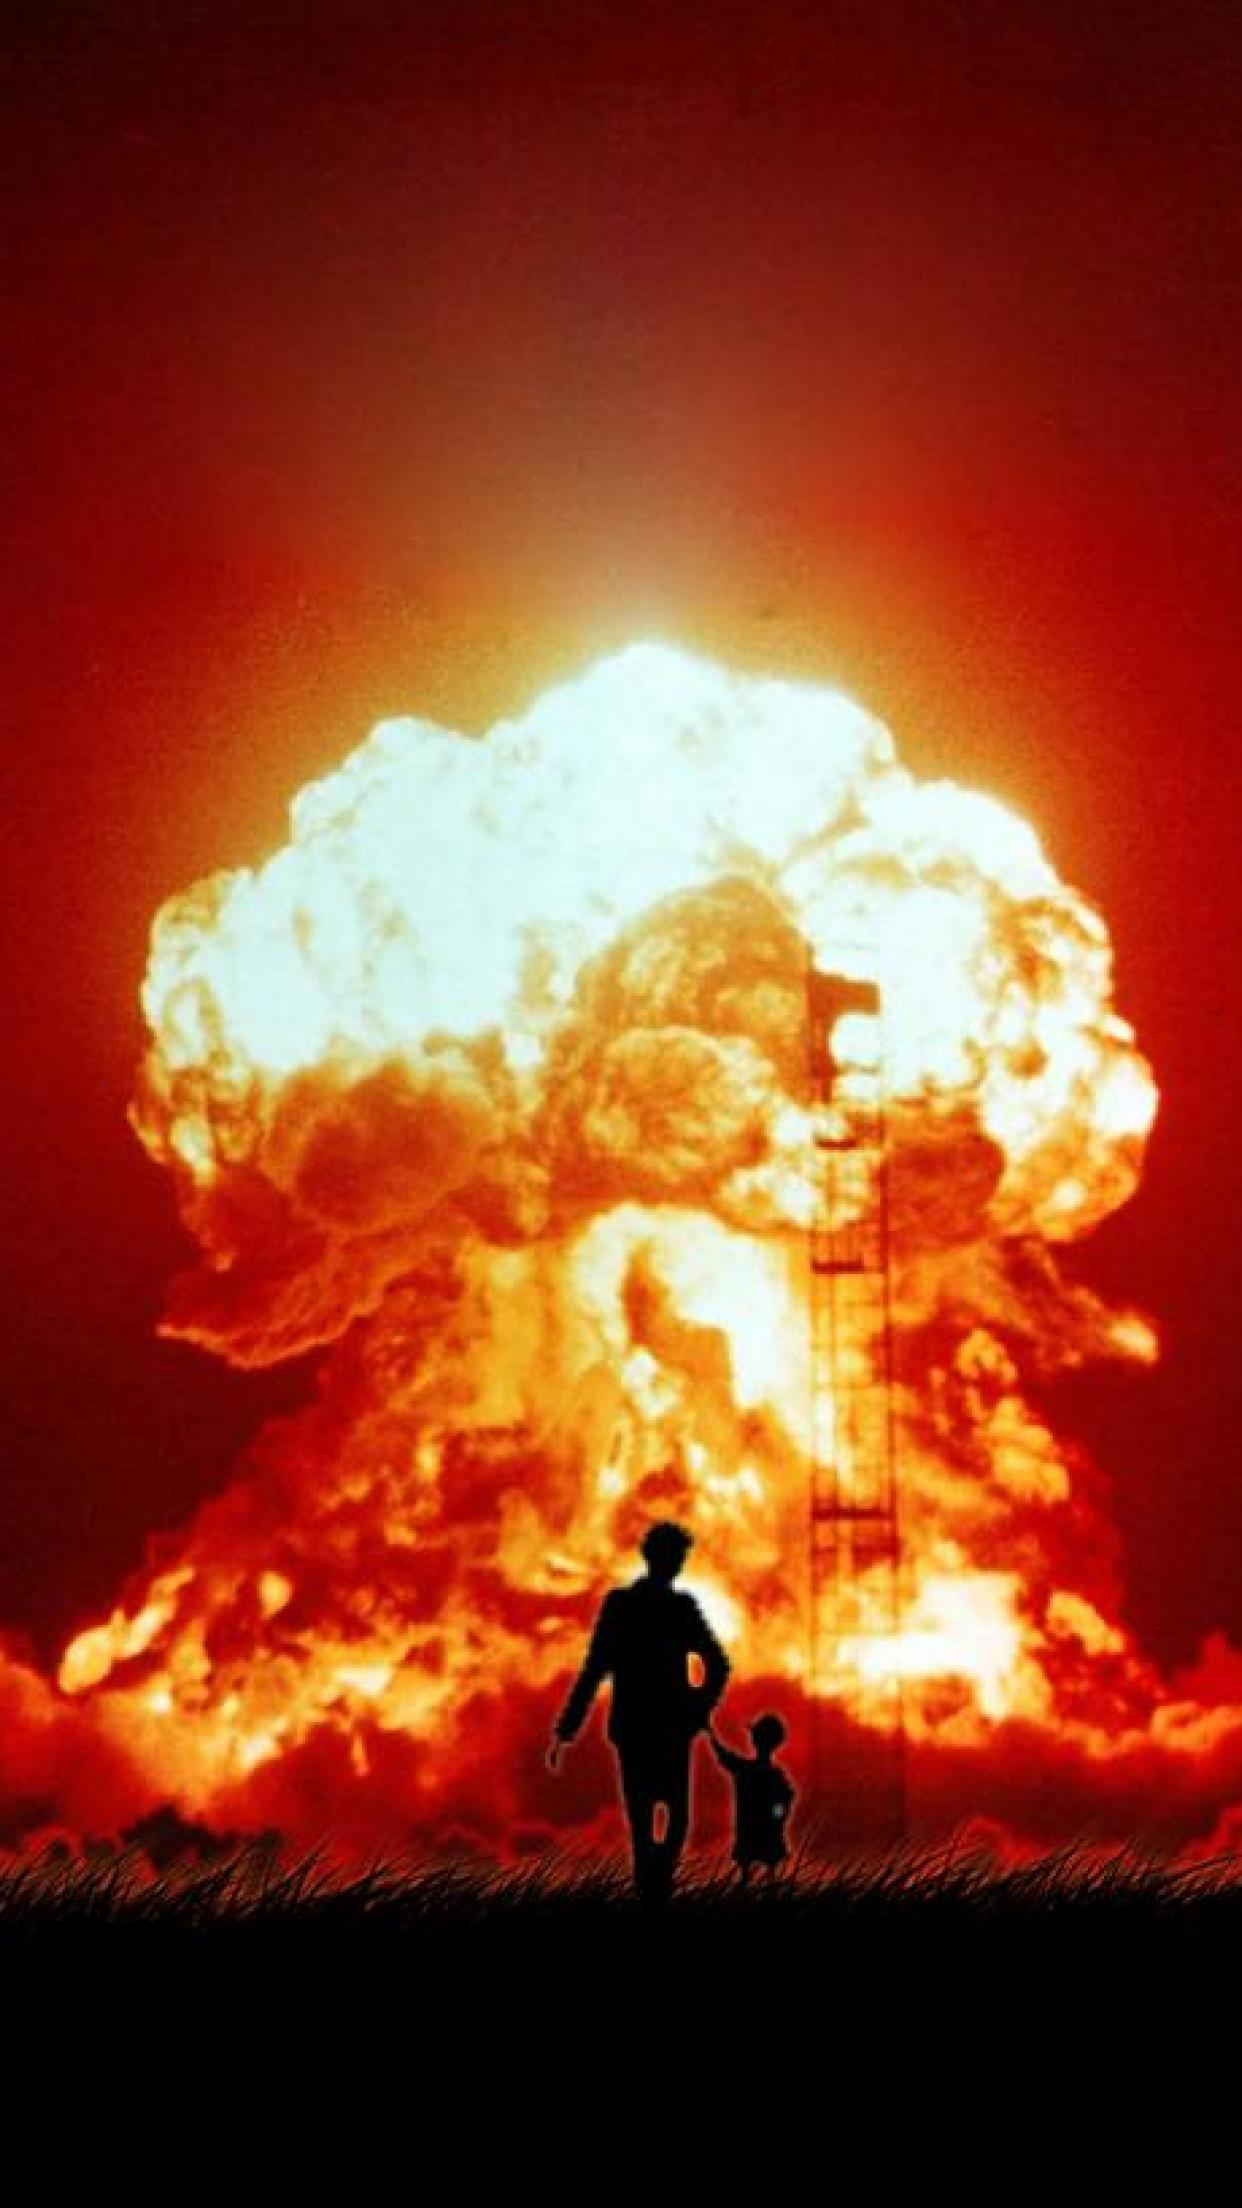 World explosion wallpapers top free world explosion - Explosion wallpaper ...